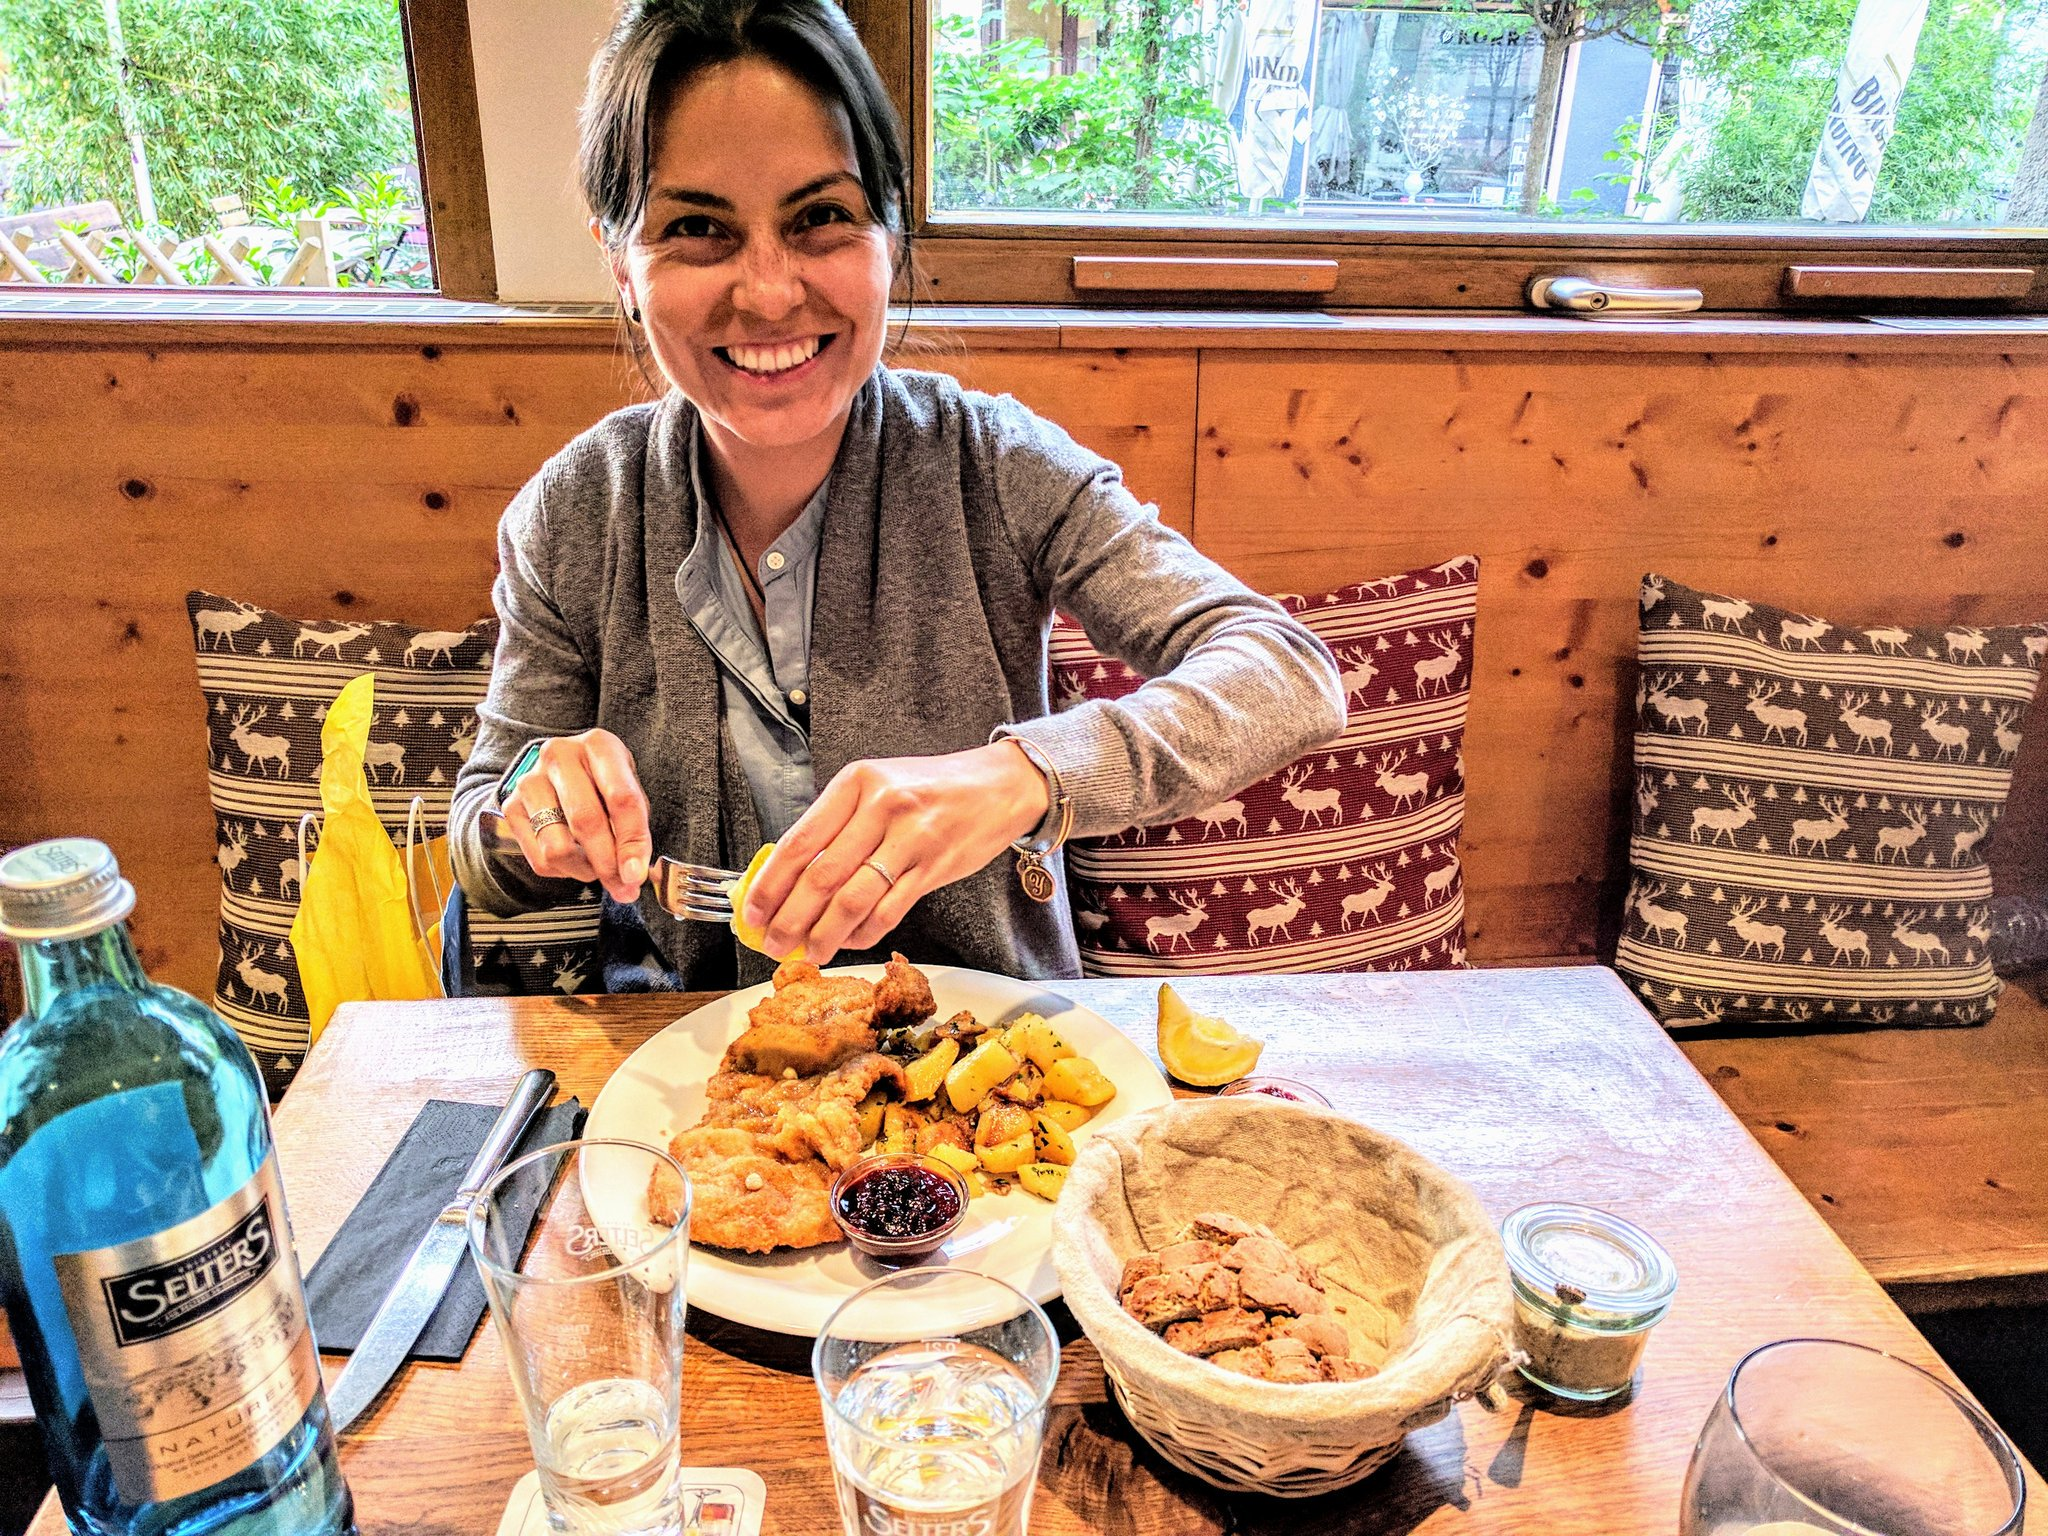 Yeni enjoying some amazing food in Germany